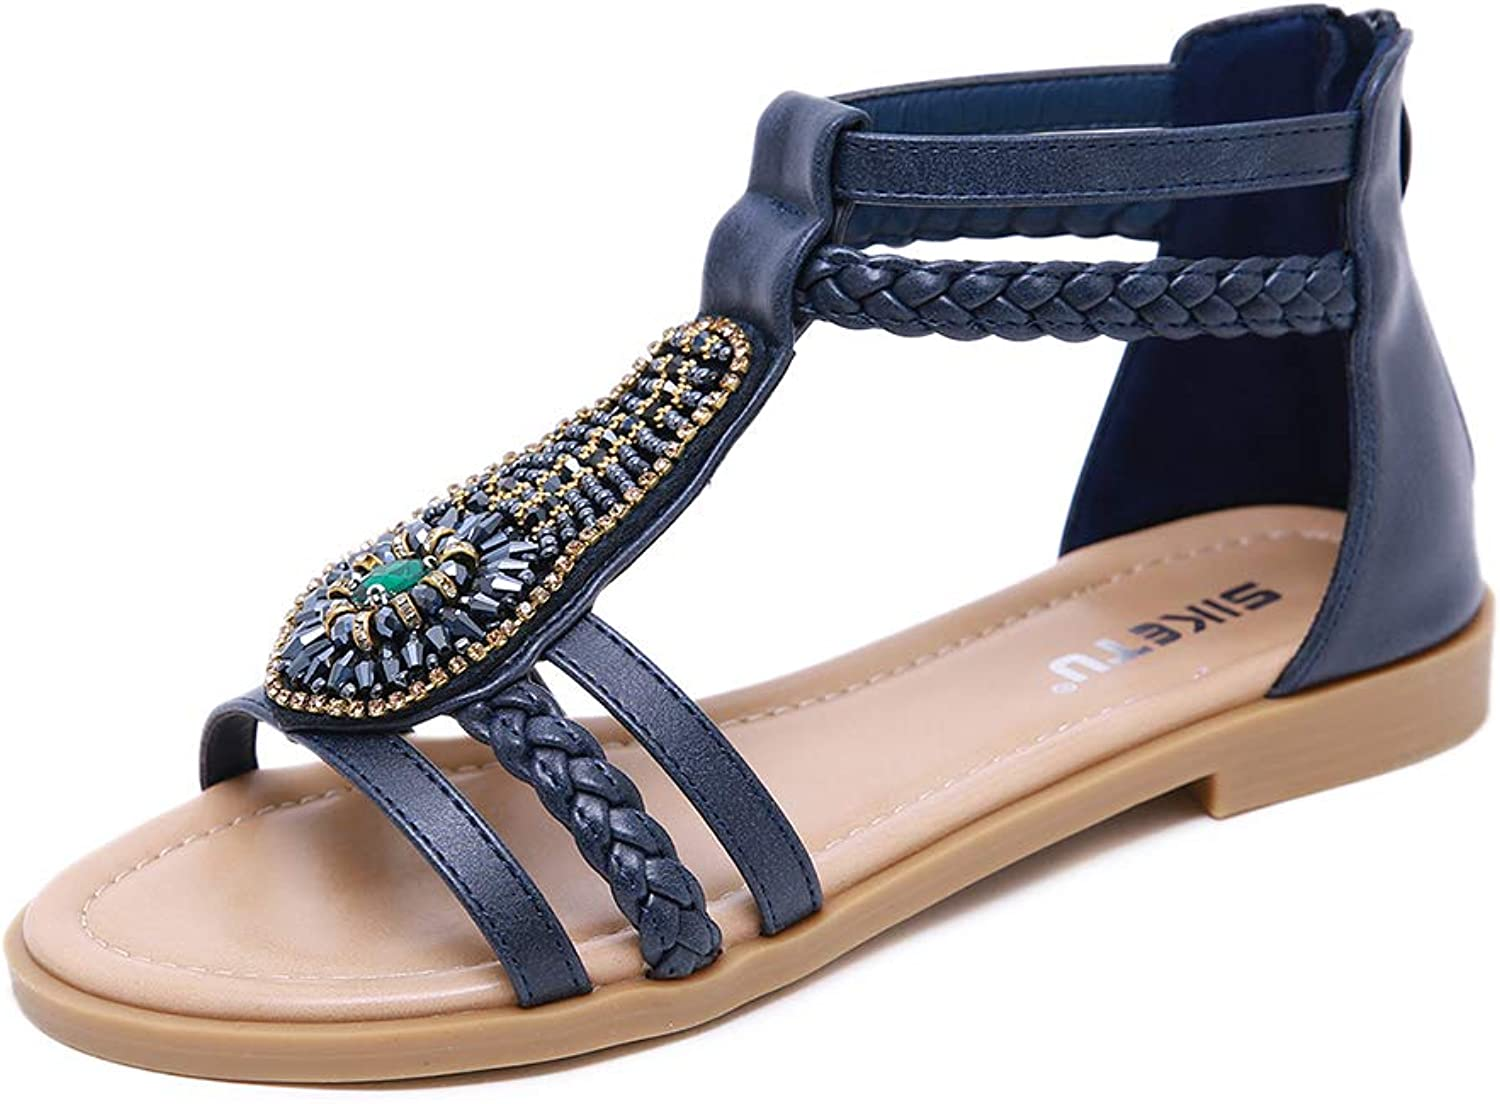 AGOWOO Womens Sandals Fashion Crystal Beaded Zipper Closure Sandles